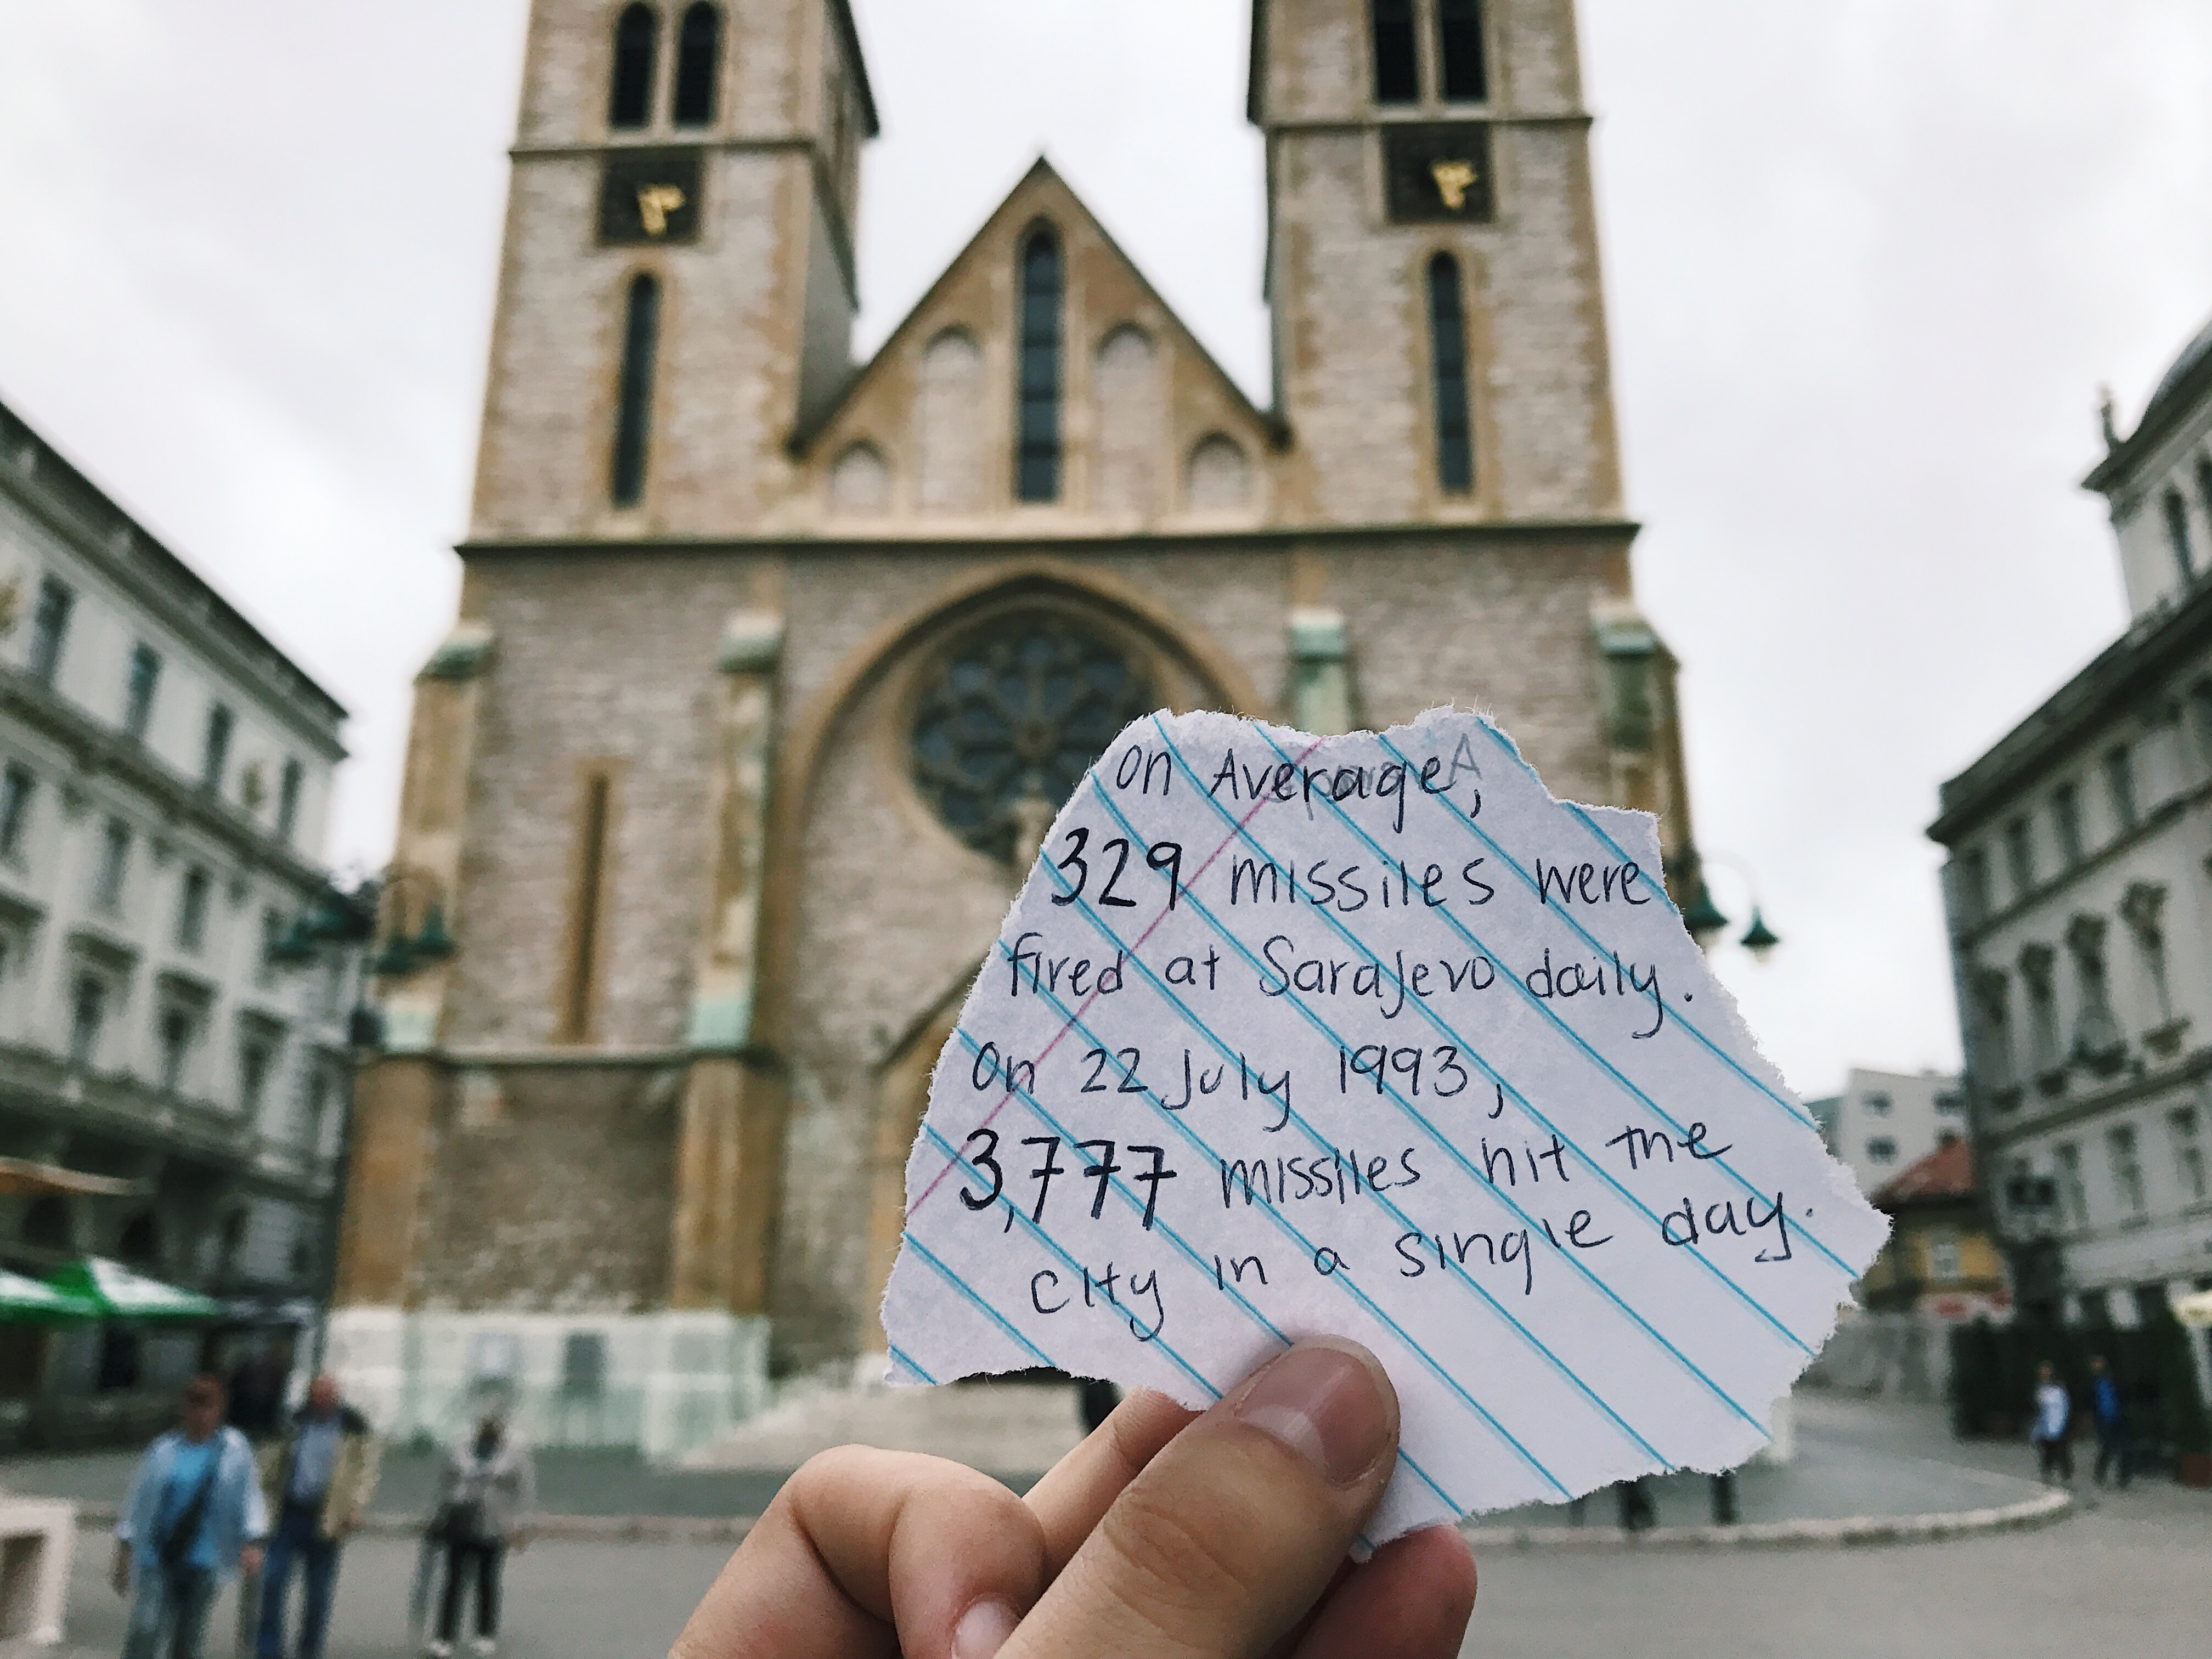 Scrap of paper in front of church which reads on average, 329 missiles were fired at Sarajevo daily. On 22 July 1993,  3,777 missiles hit the city in a single day.